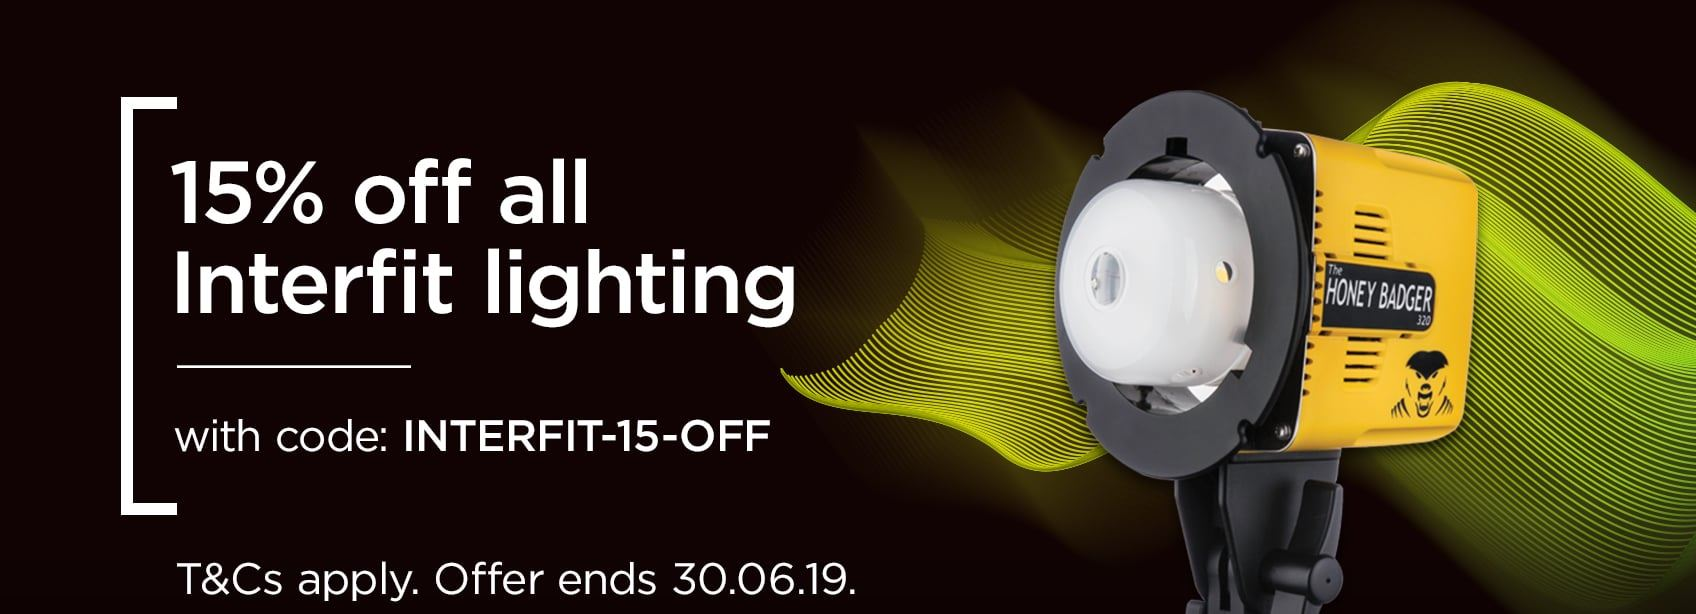 15% Off Interfit with INTERFIT-15-OFF